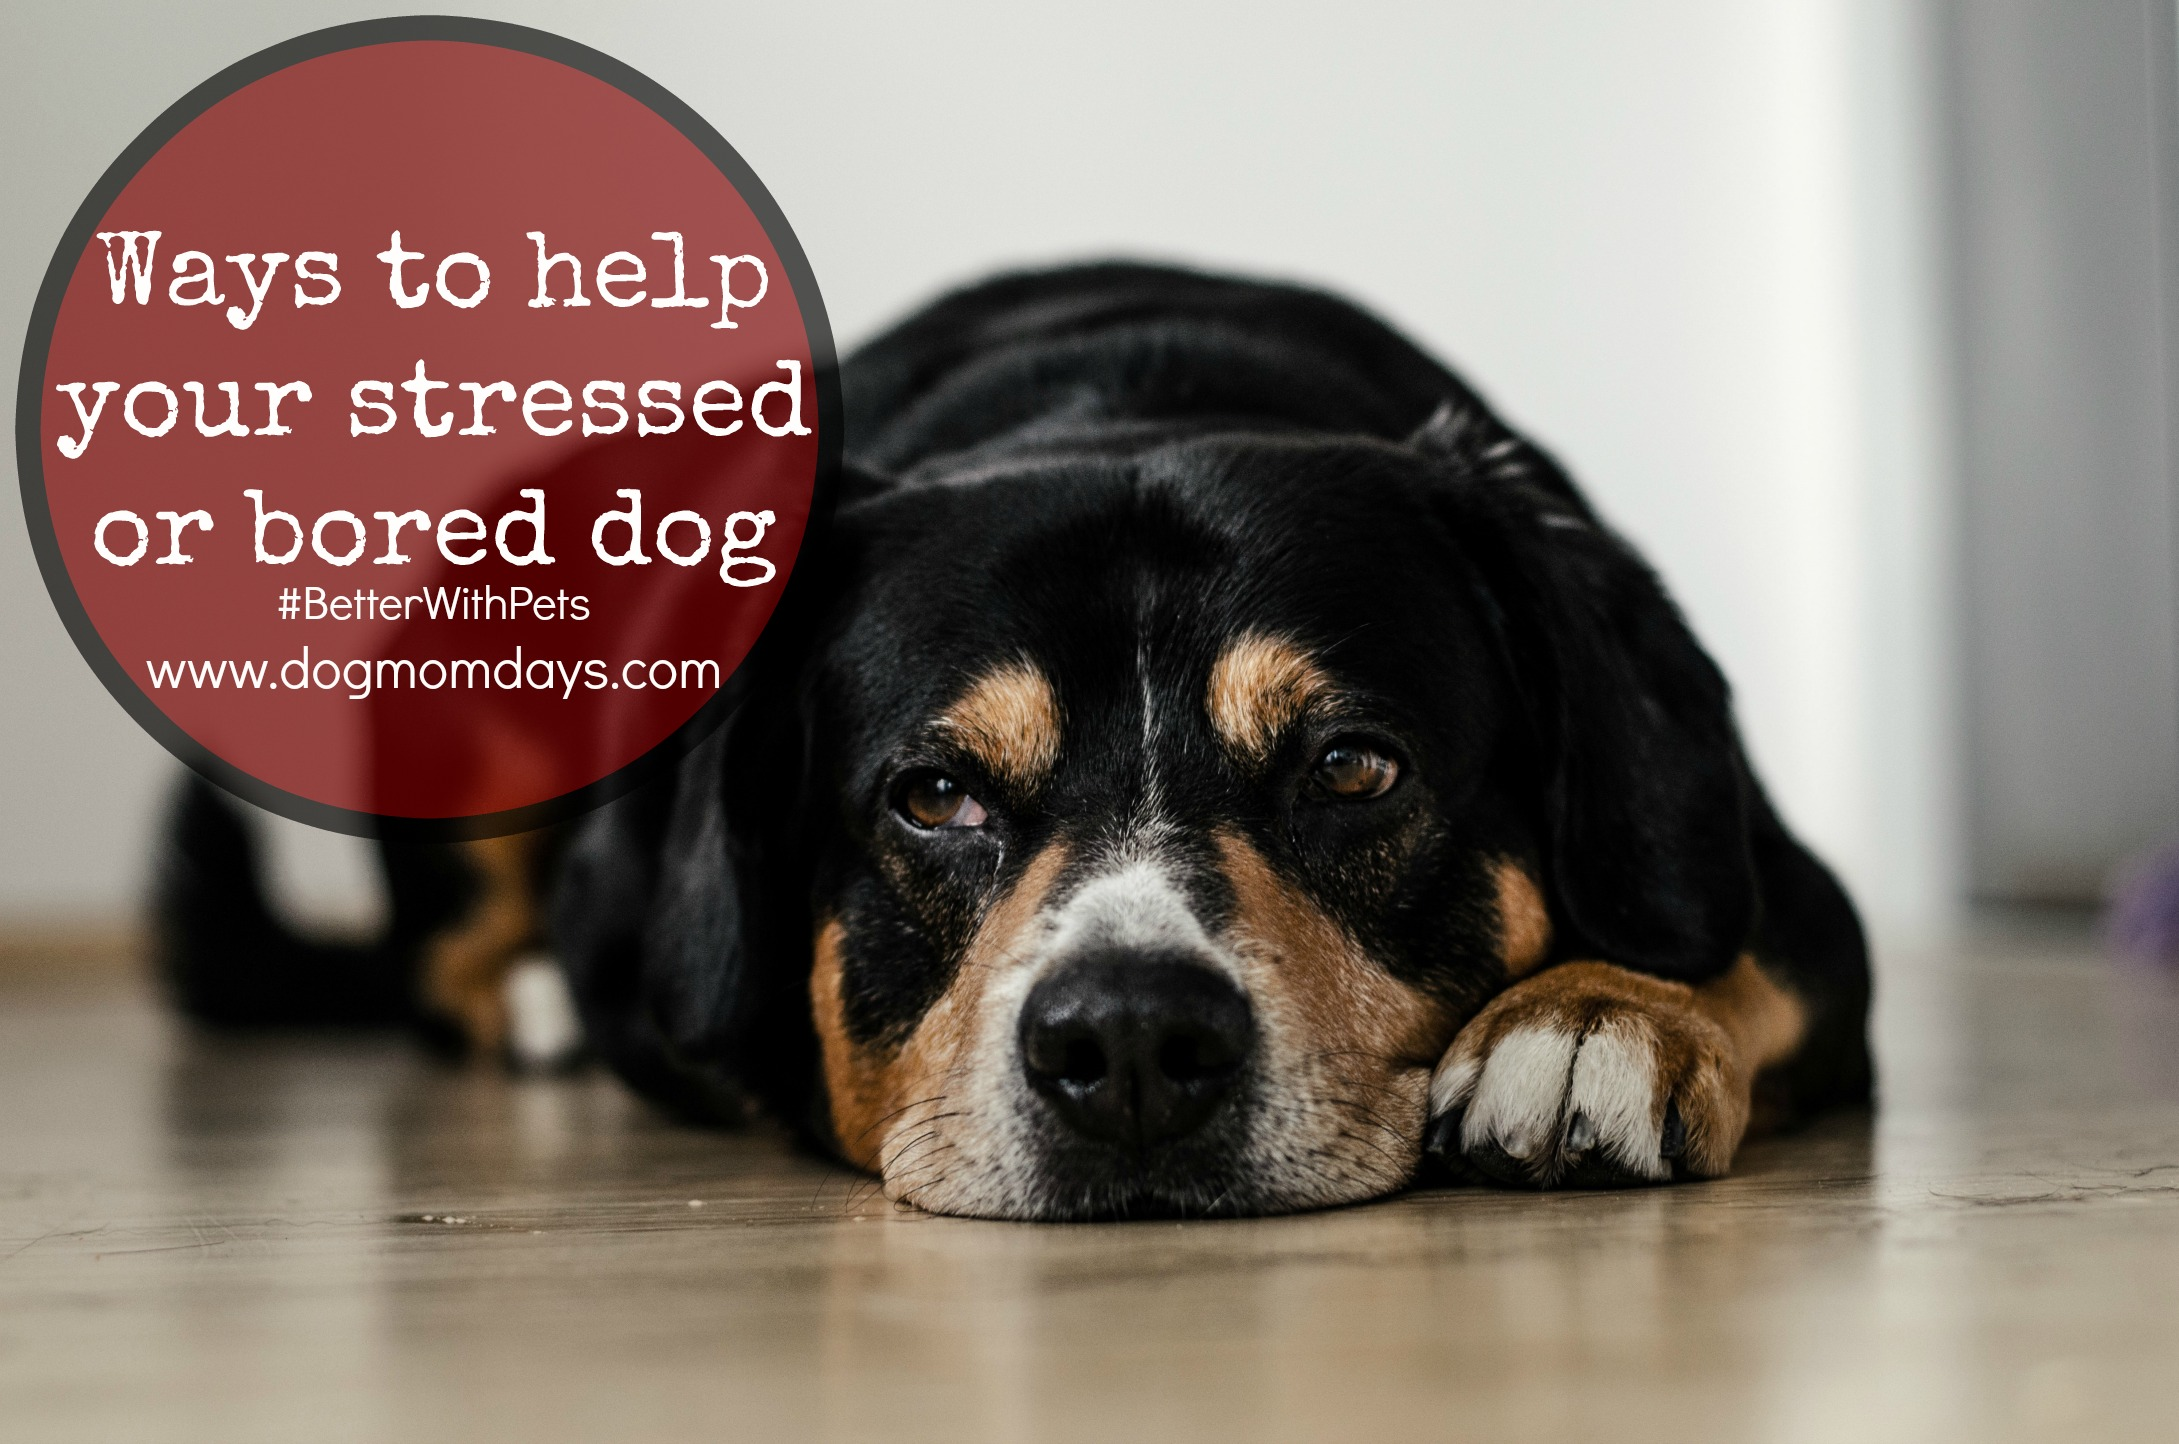 ways to help your bored or stressed dog